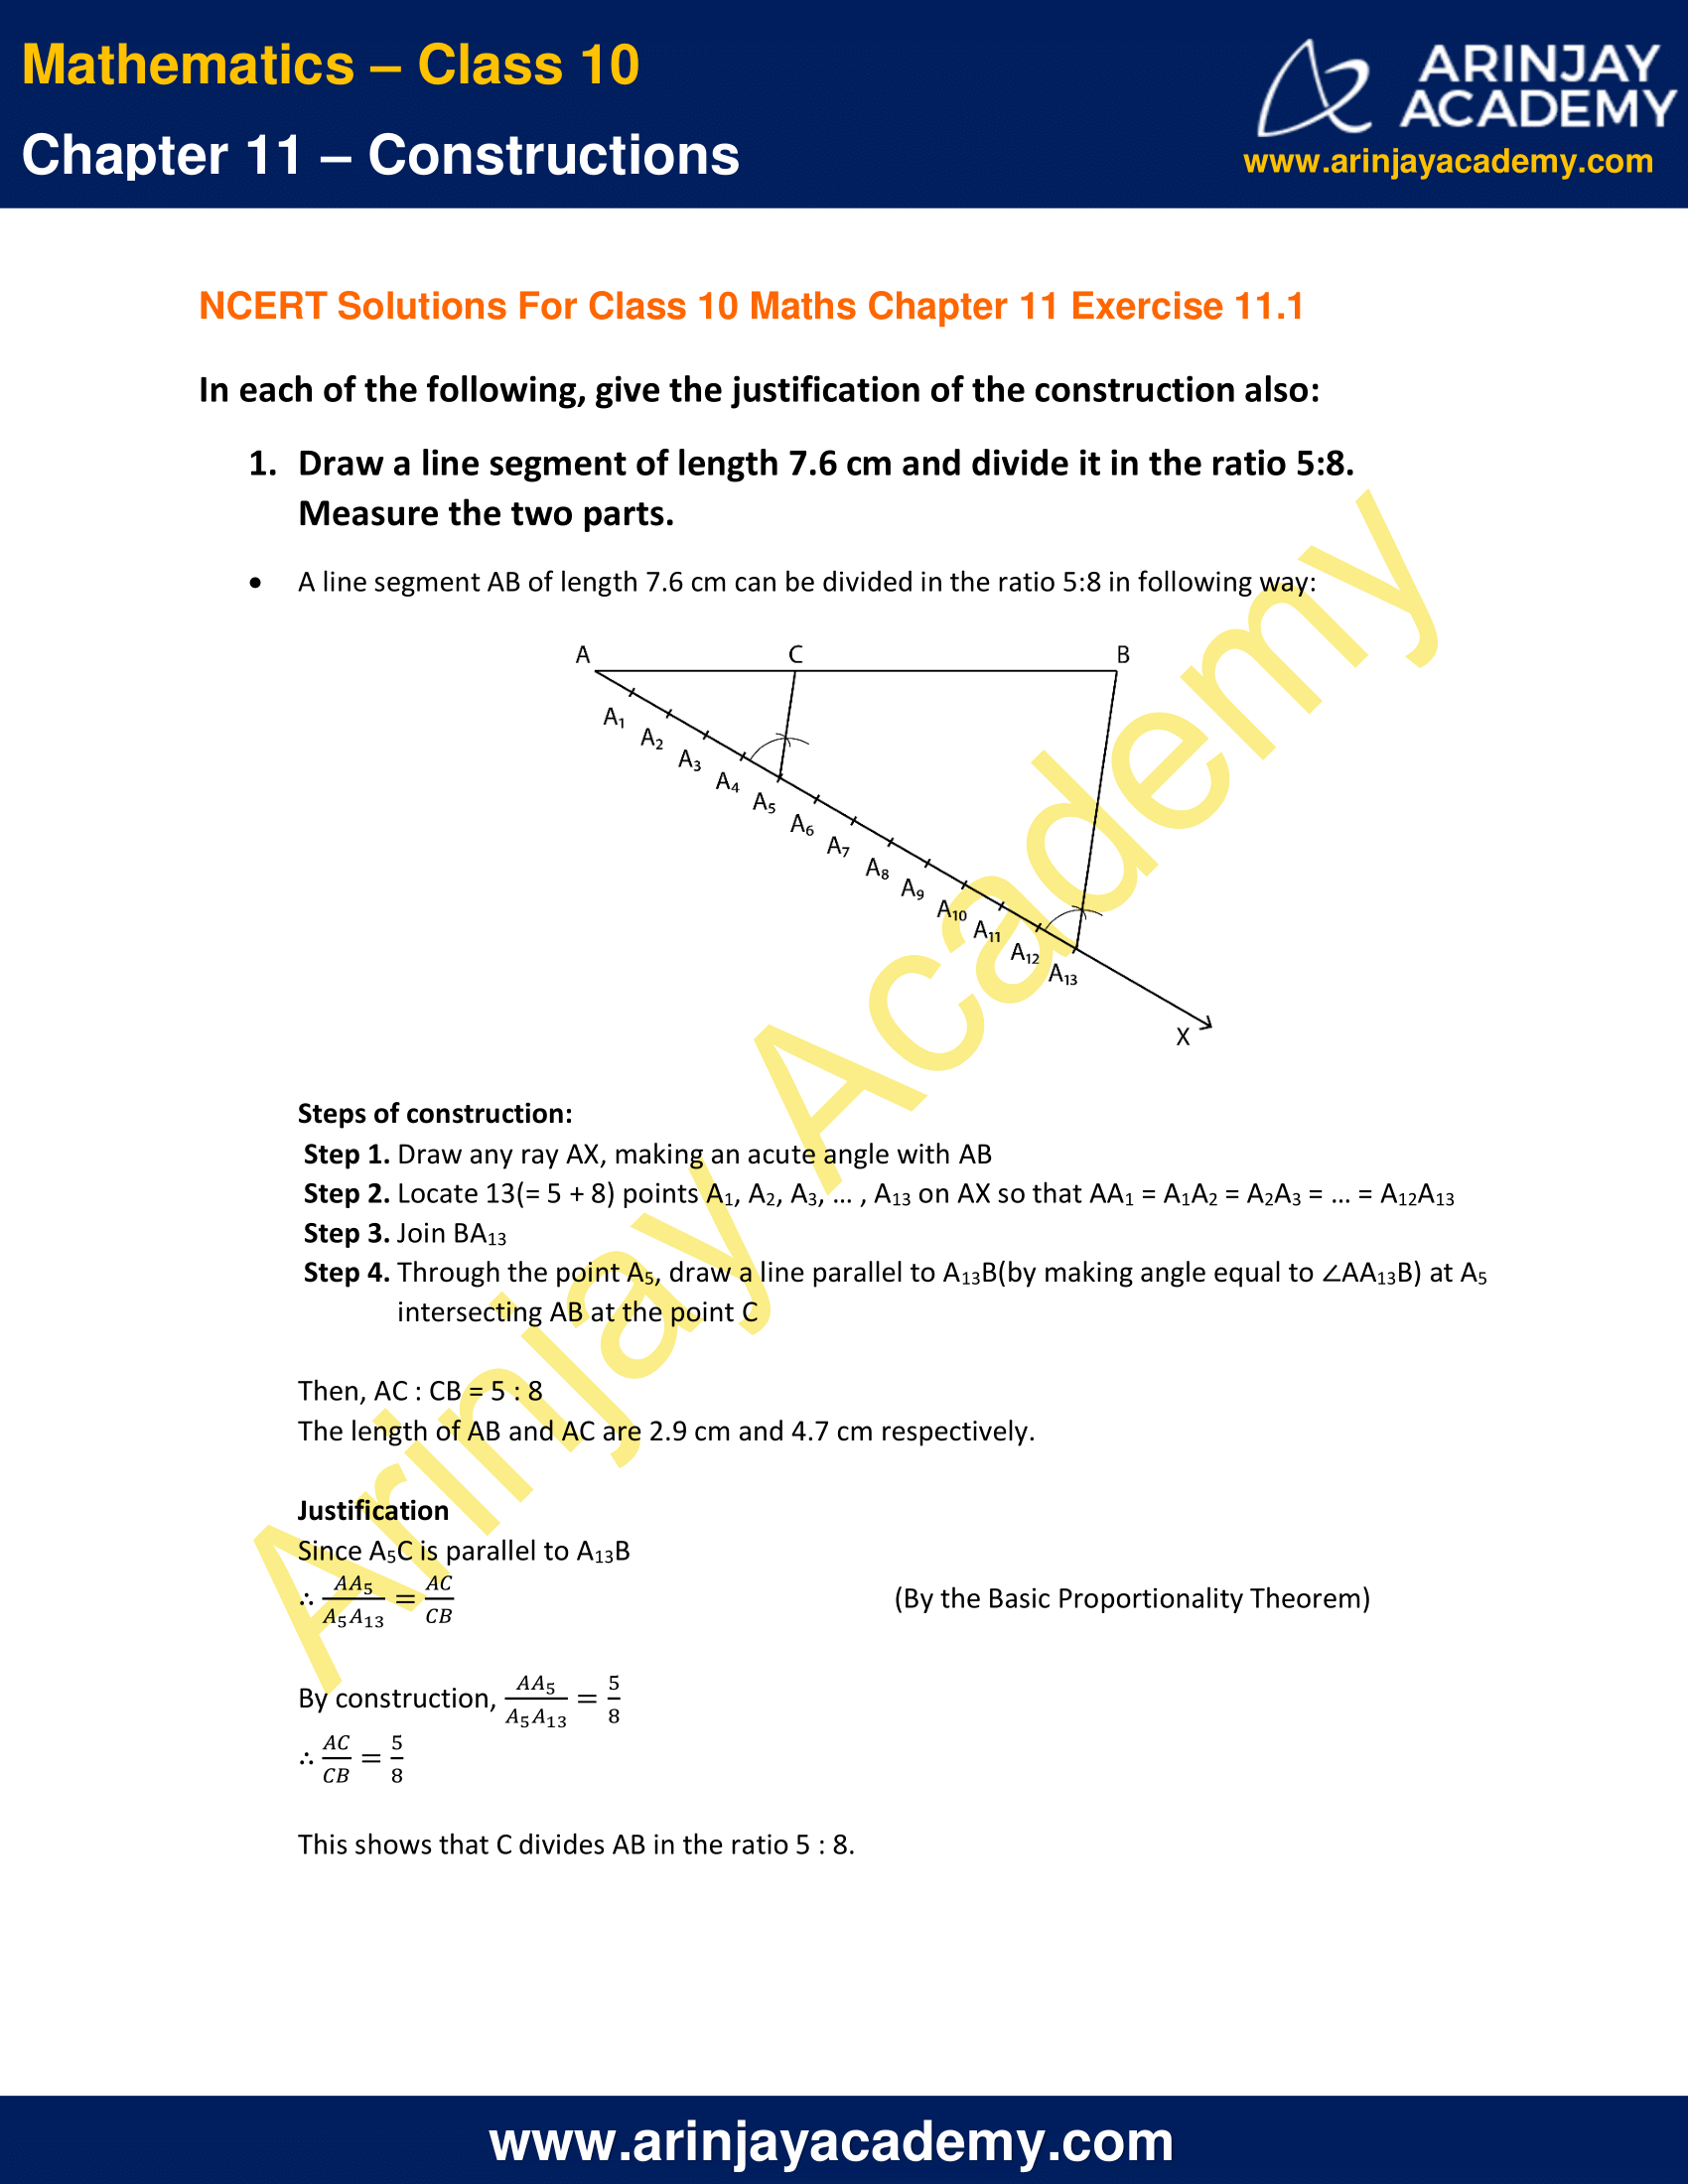 NCERT Solutions For Class 10 Maths Chapter 11 Exercise 11.1 image 1